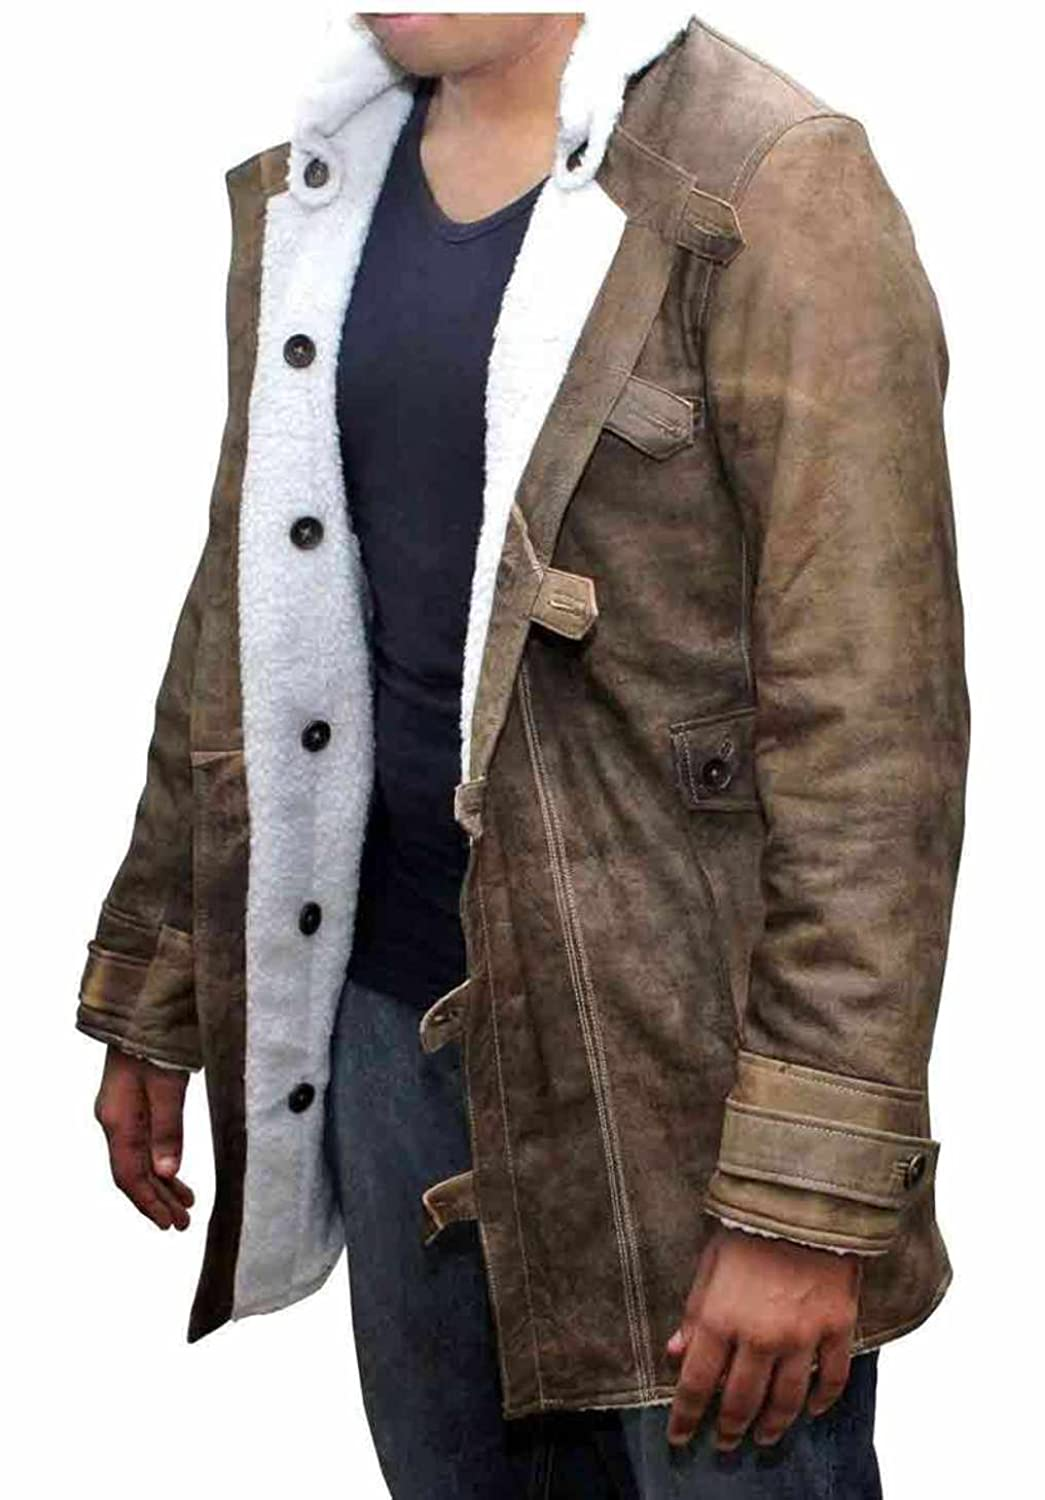 Men's Shearling Coat - Distressed Brown Leather Shearling Jacket